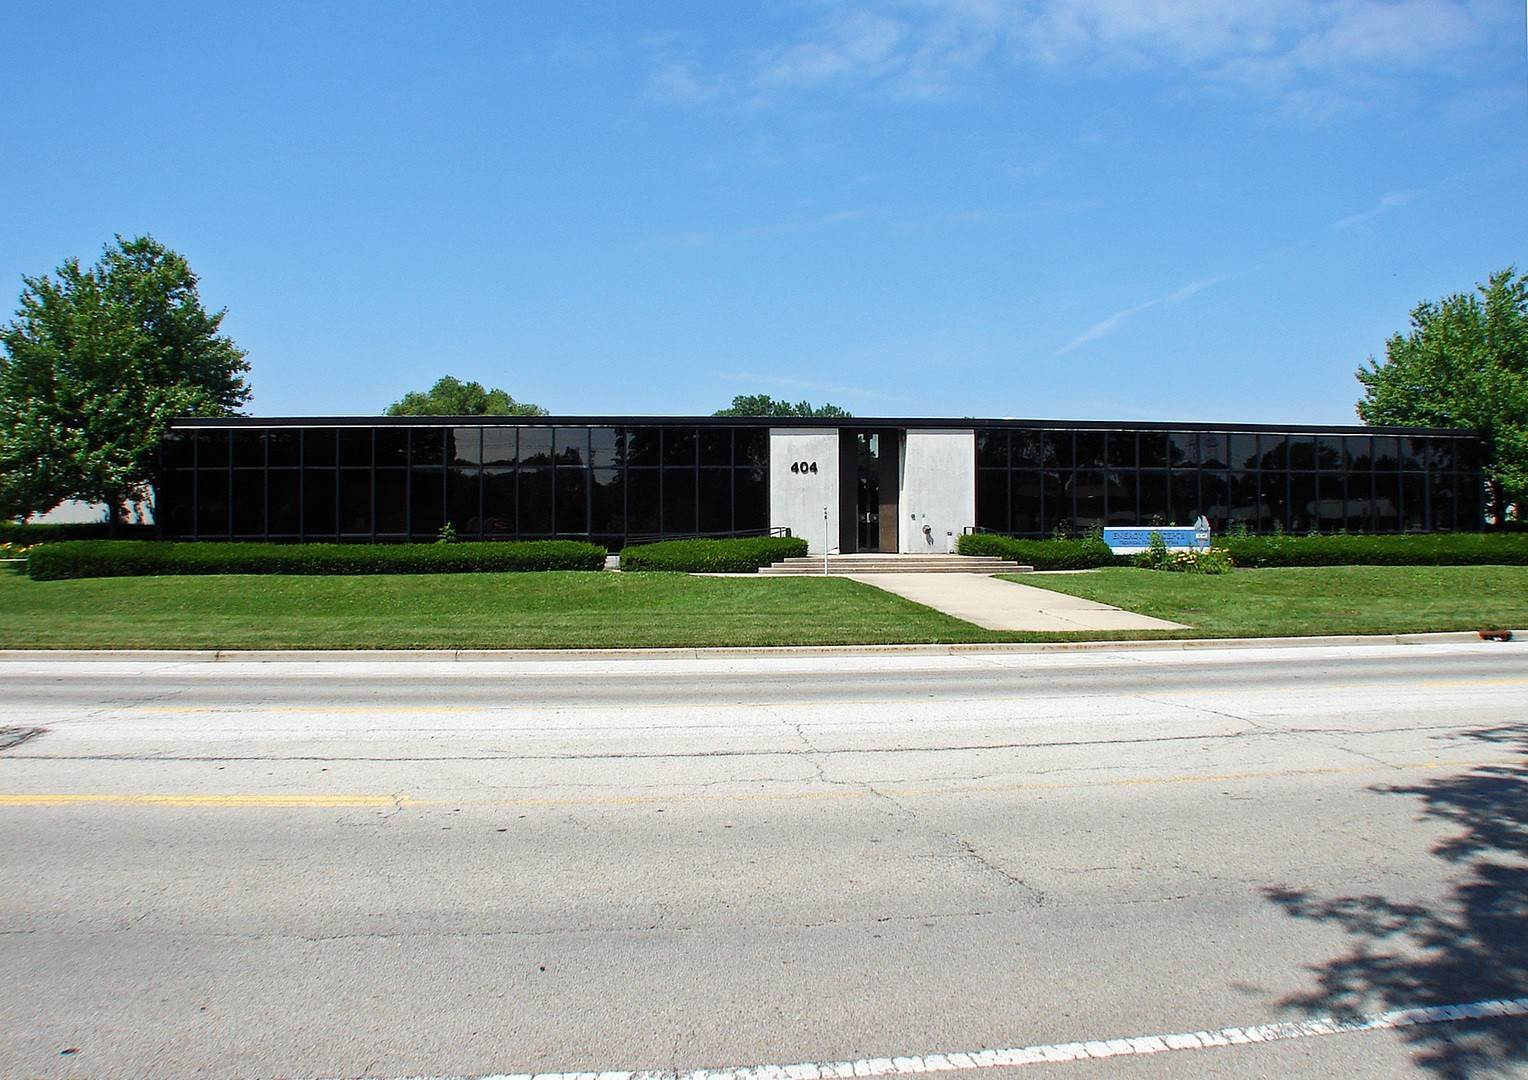 Commercial for Sale at 404 Washington Boulevard Mundelein, Illinois 60060 United States